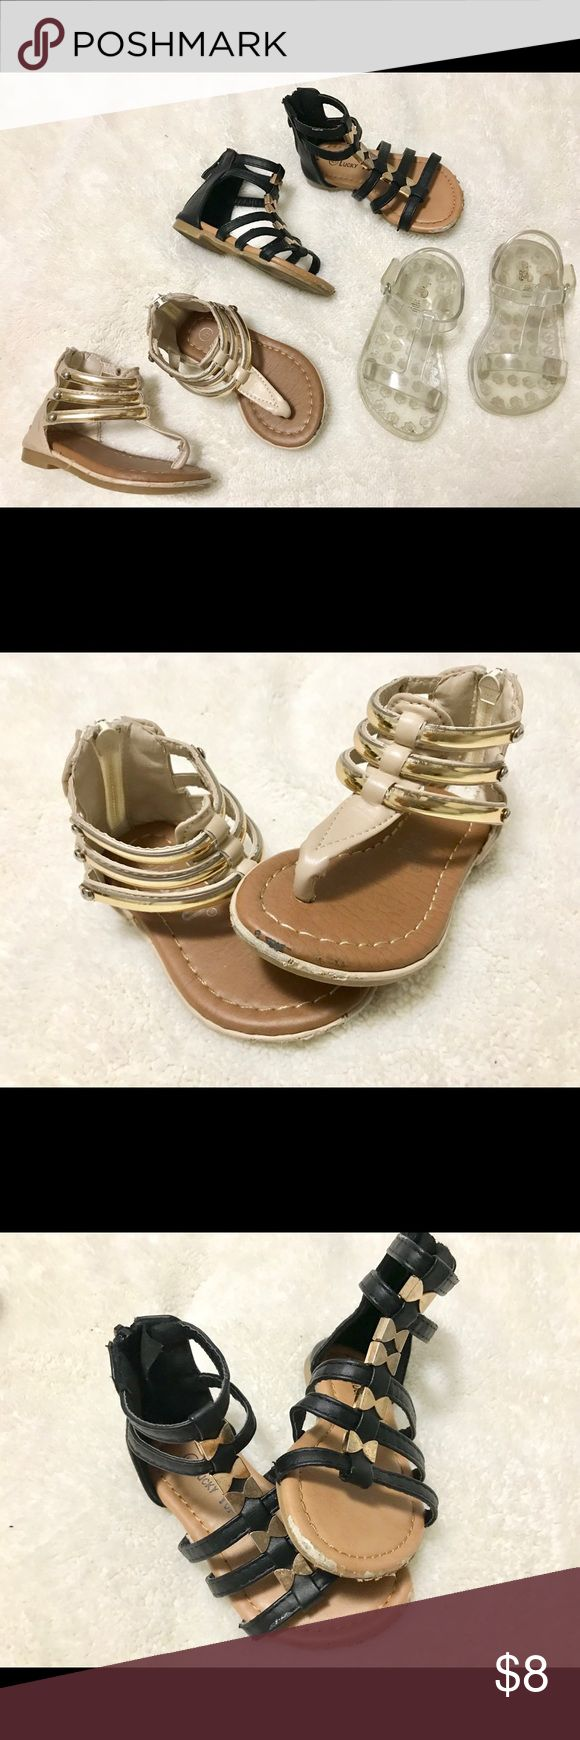 Bulk Gap, Jumbo Coco & Lucky Top Gladiator Sandals Selling all together used Sandals Pictures provided to show condition but very much still has life left!  Gap clear Sandals with Velcro closure Size 5 Condition: great condition   Jumbo Coco Black Gladiators  with back zipper closure  Size 5 Condition: Used  Lucky Top Gladiators with gold accents. Back zipper closure Size 5 Condition: Used Shoes Sandals & Flip Flops